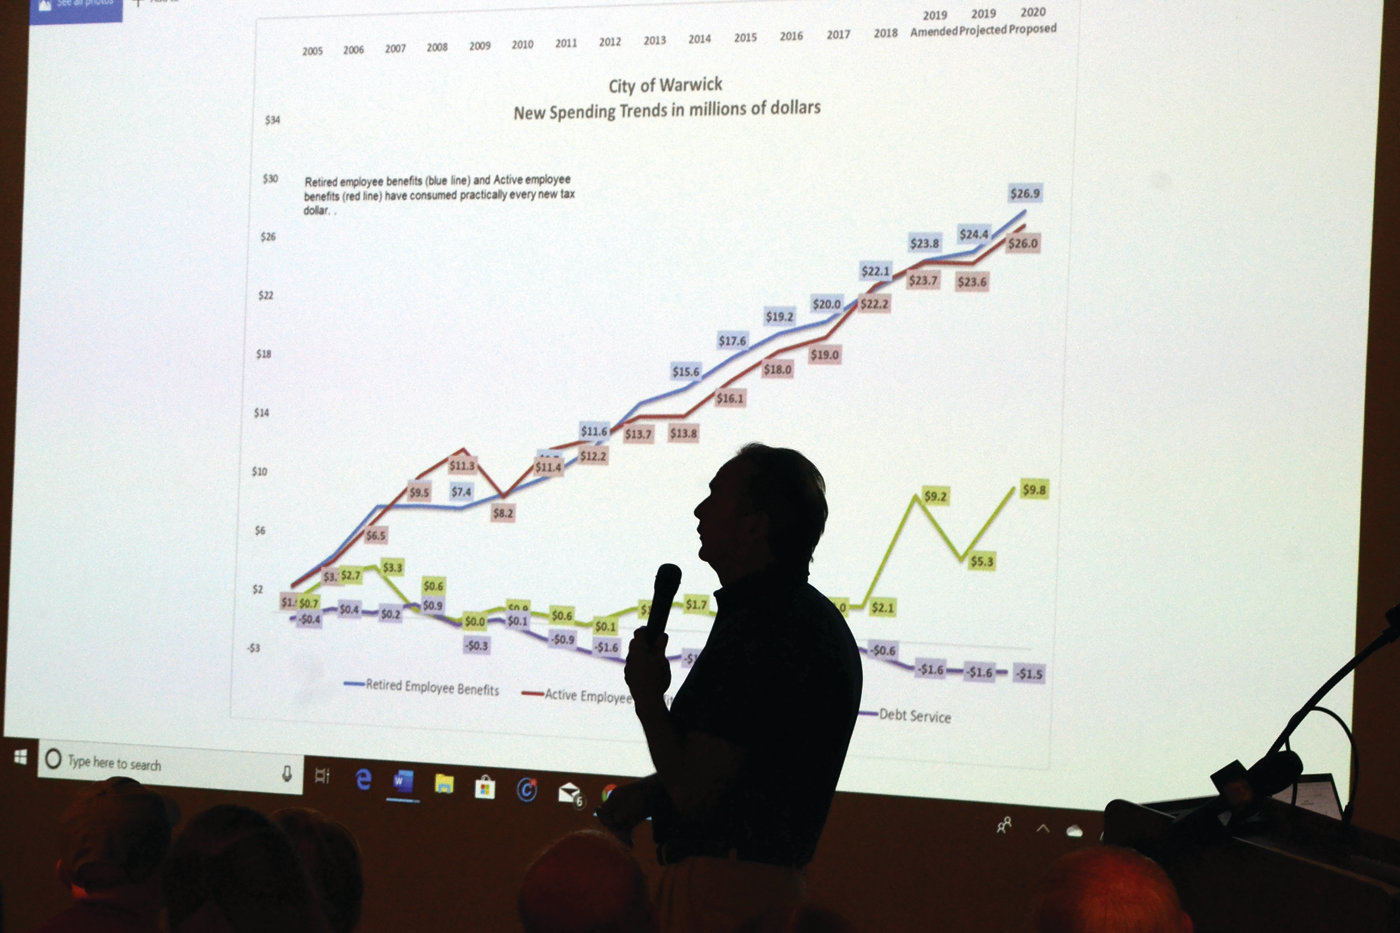 DARK OUTLOOK: Citizen watchdog Rob Cote goes over spending figures related to employee costs in the city budget during Thursday night's meeting of the Warwick Financial Crisis Committee.